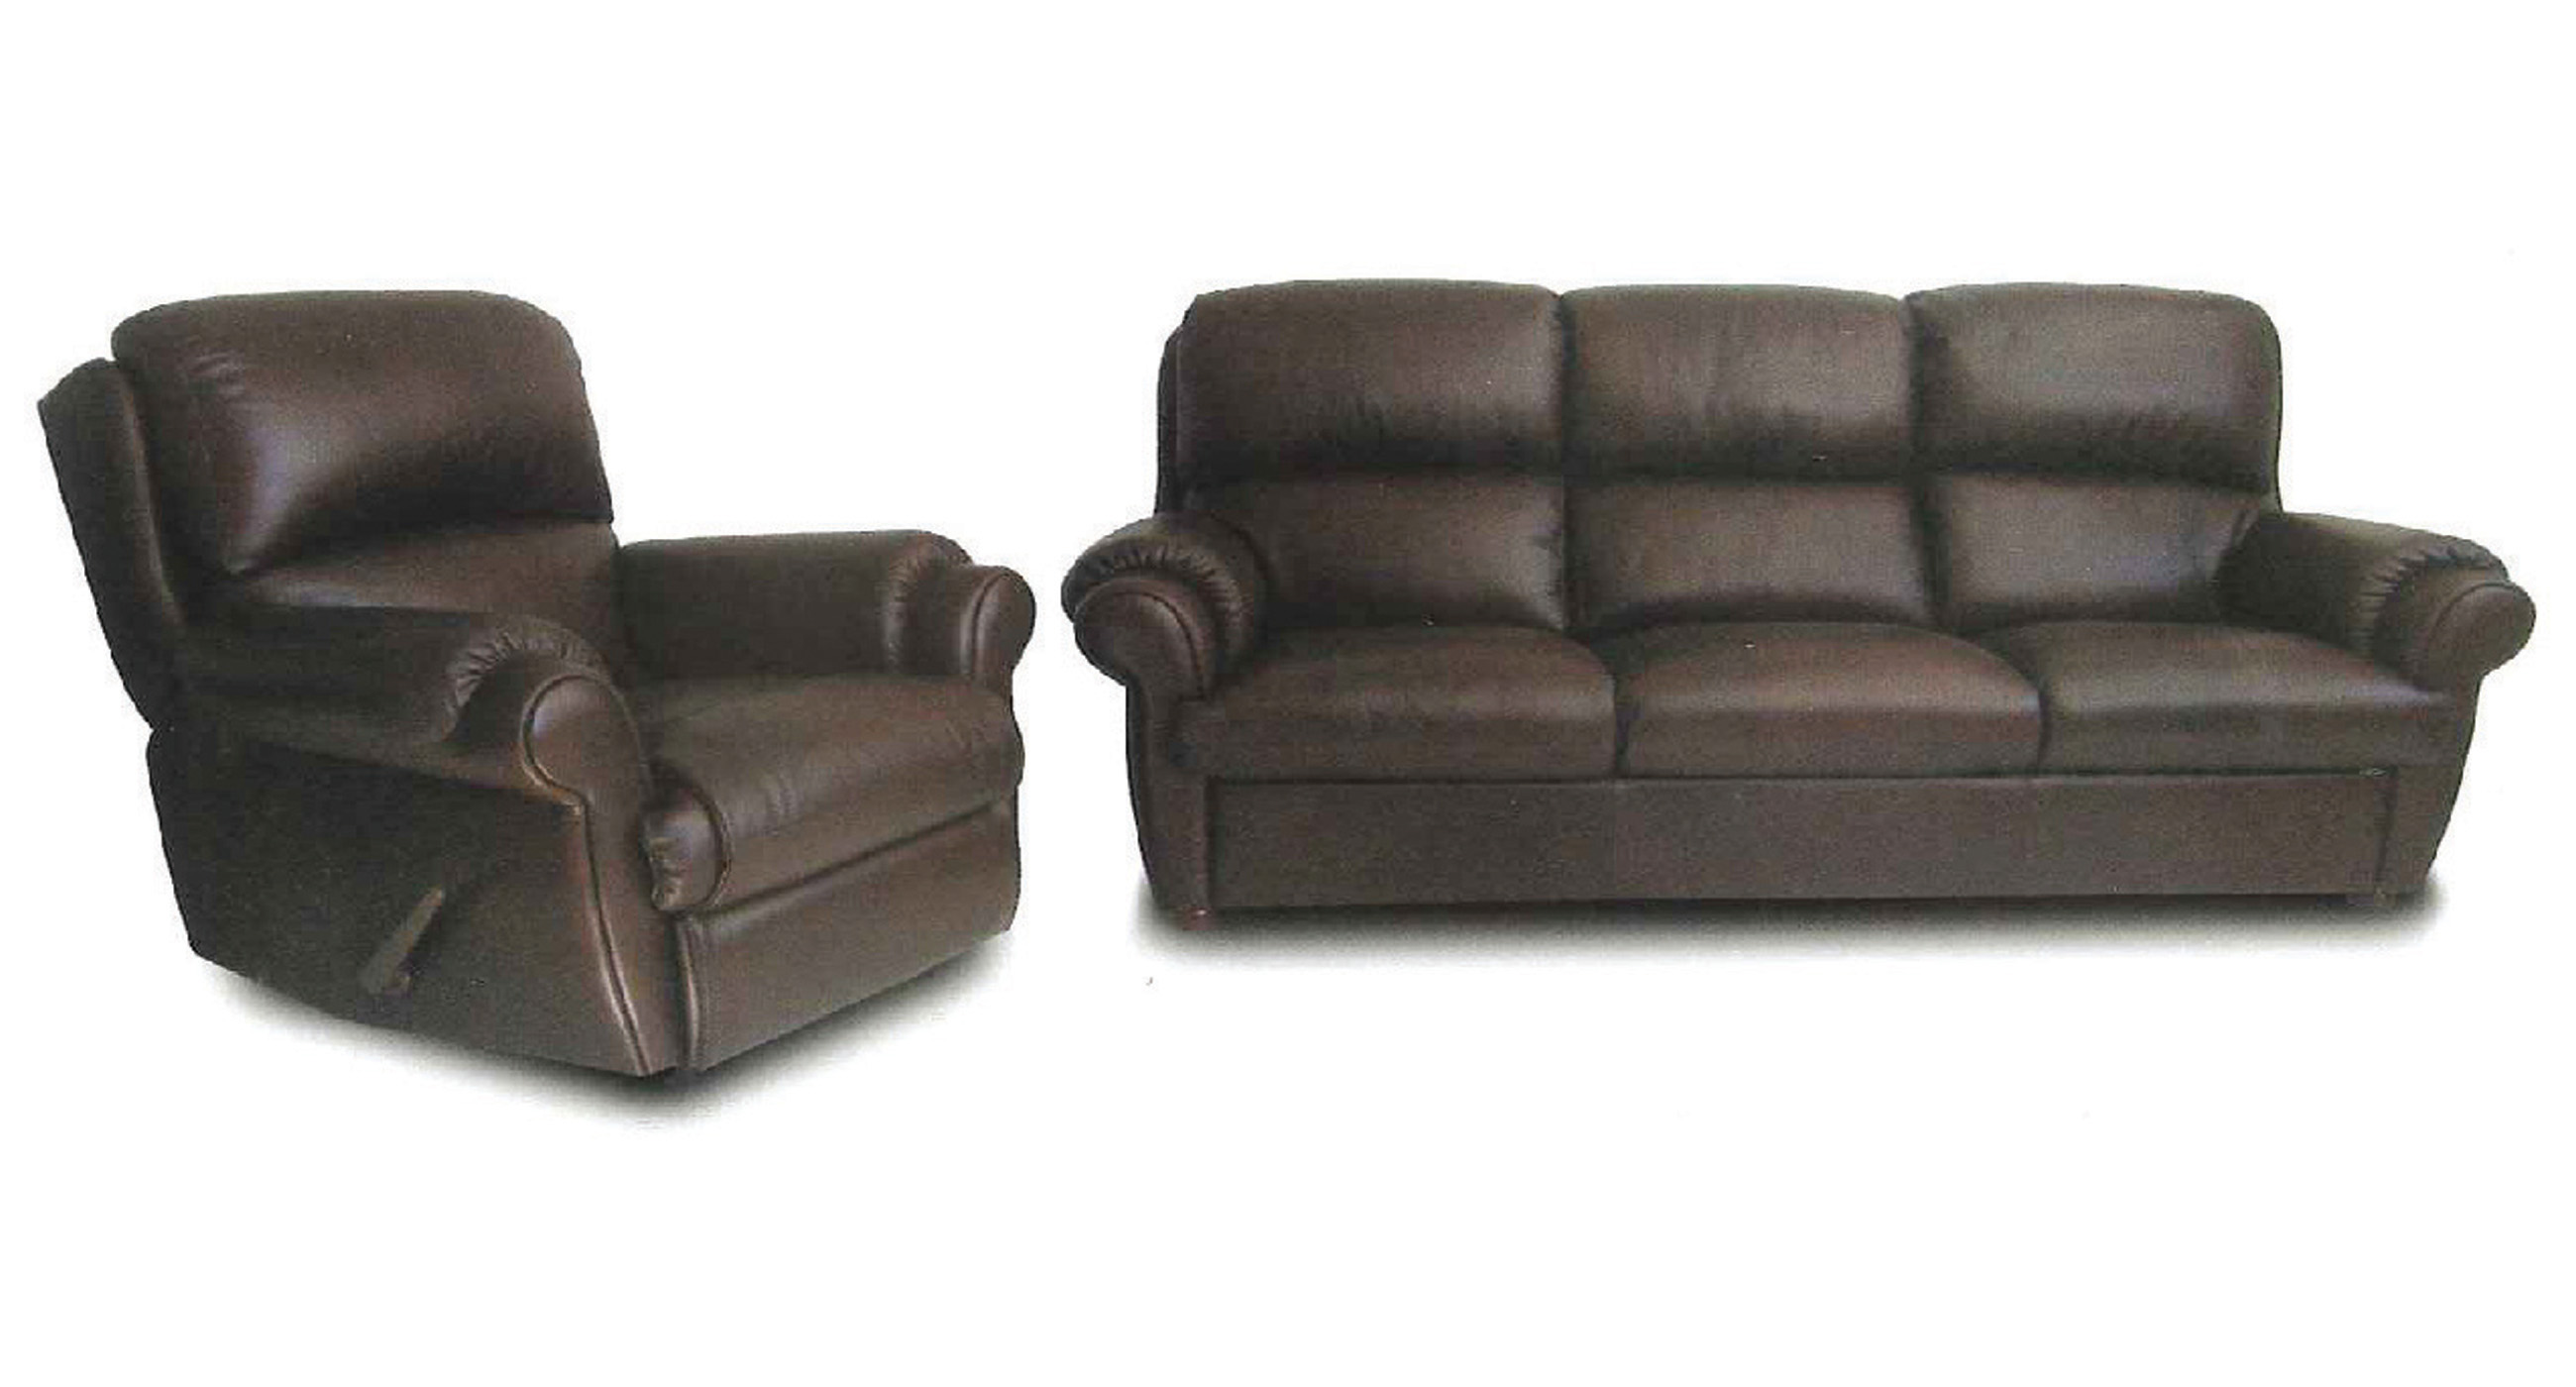 Opal Reclining Sofa and Chairs